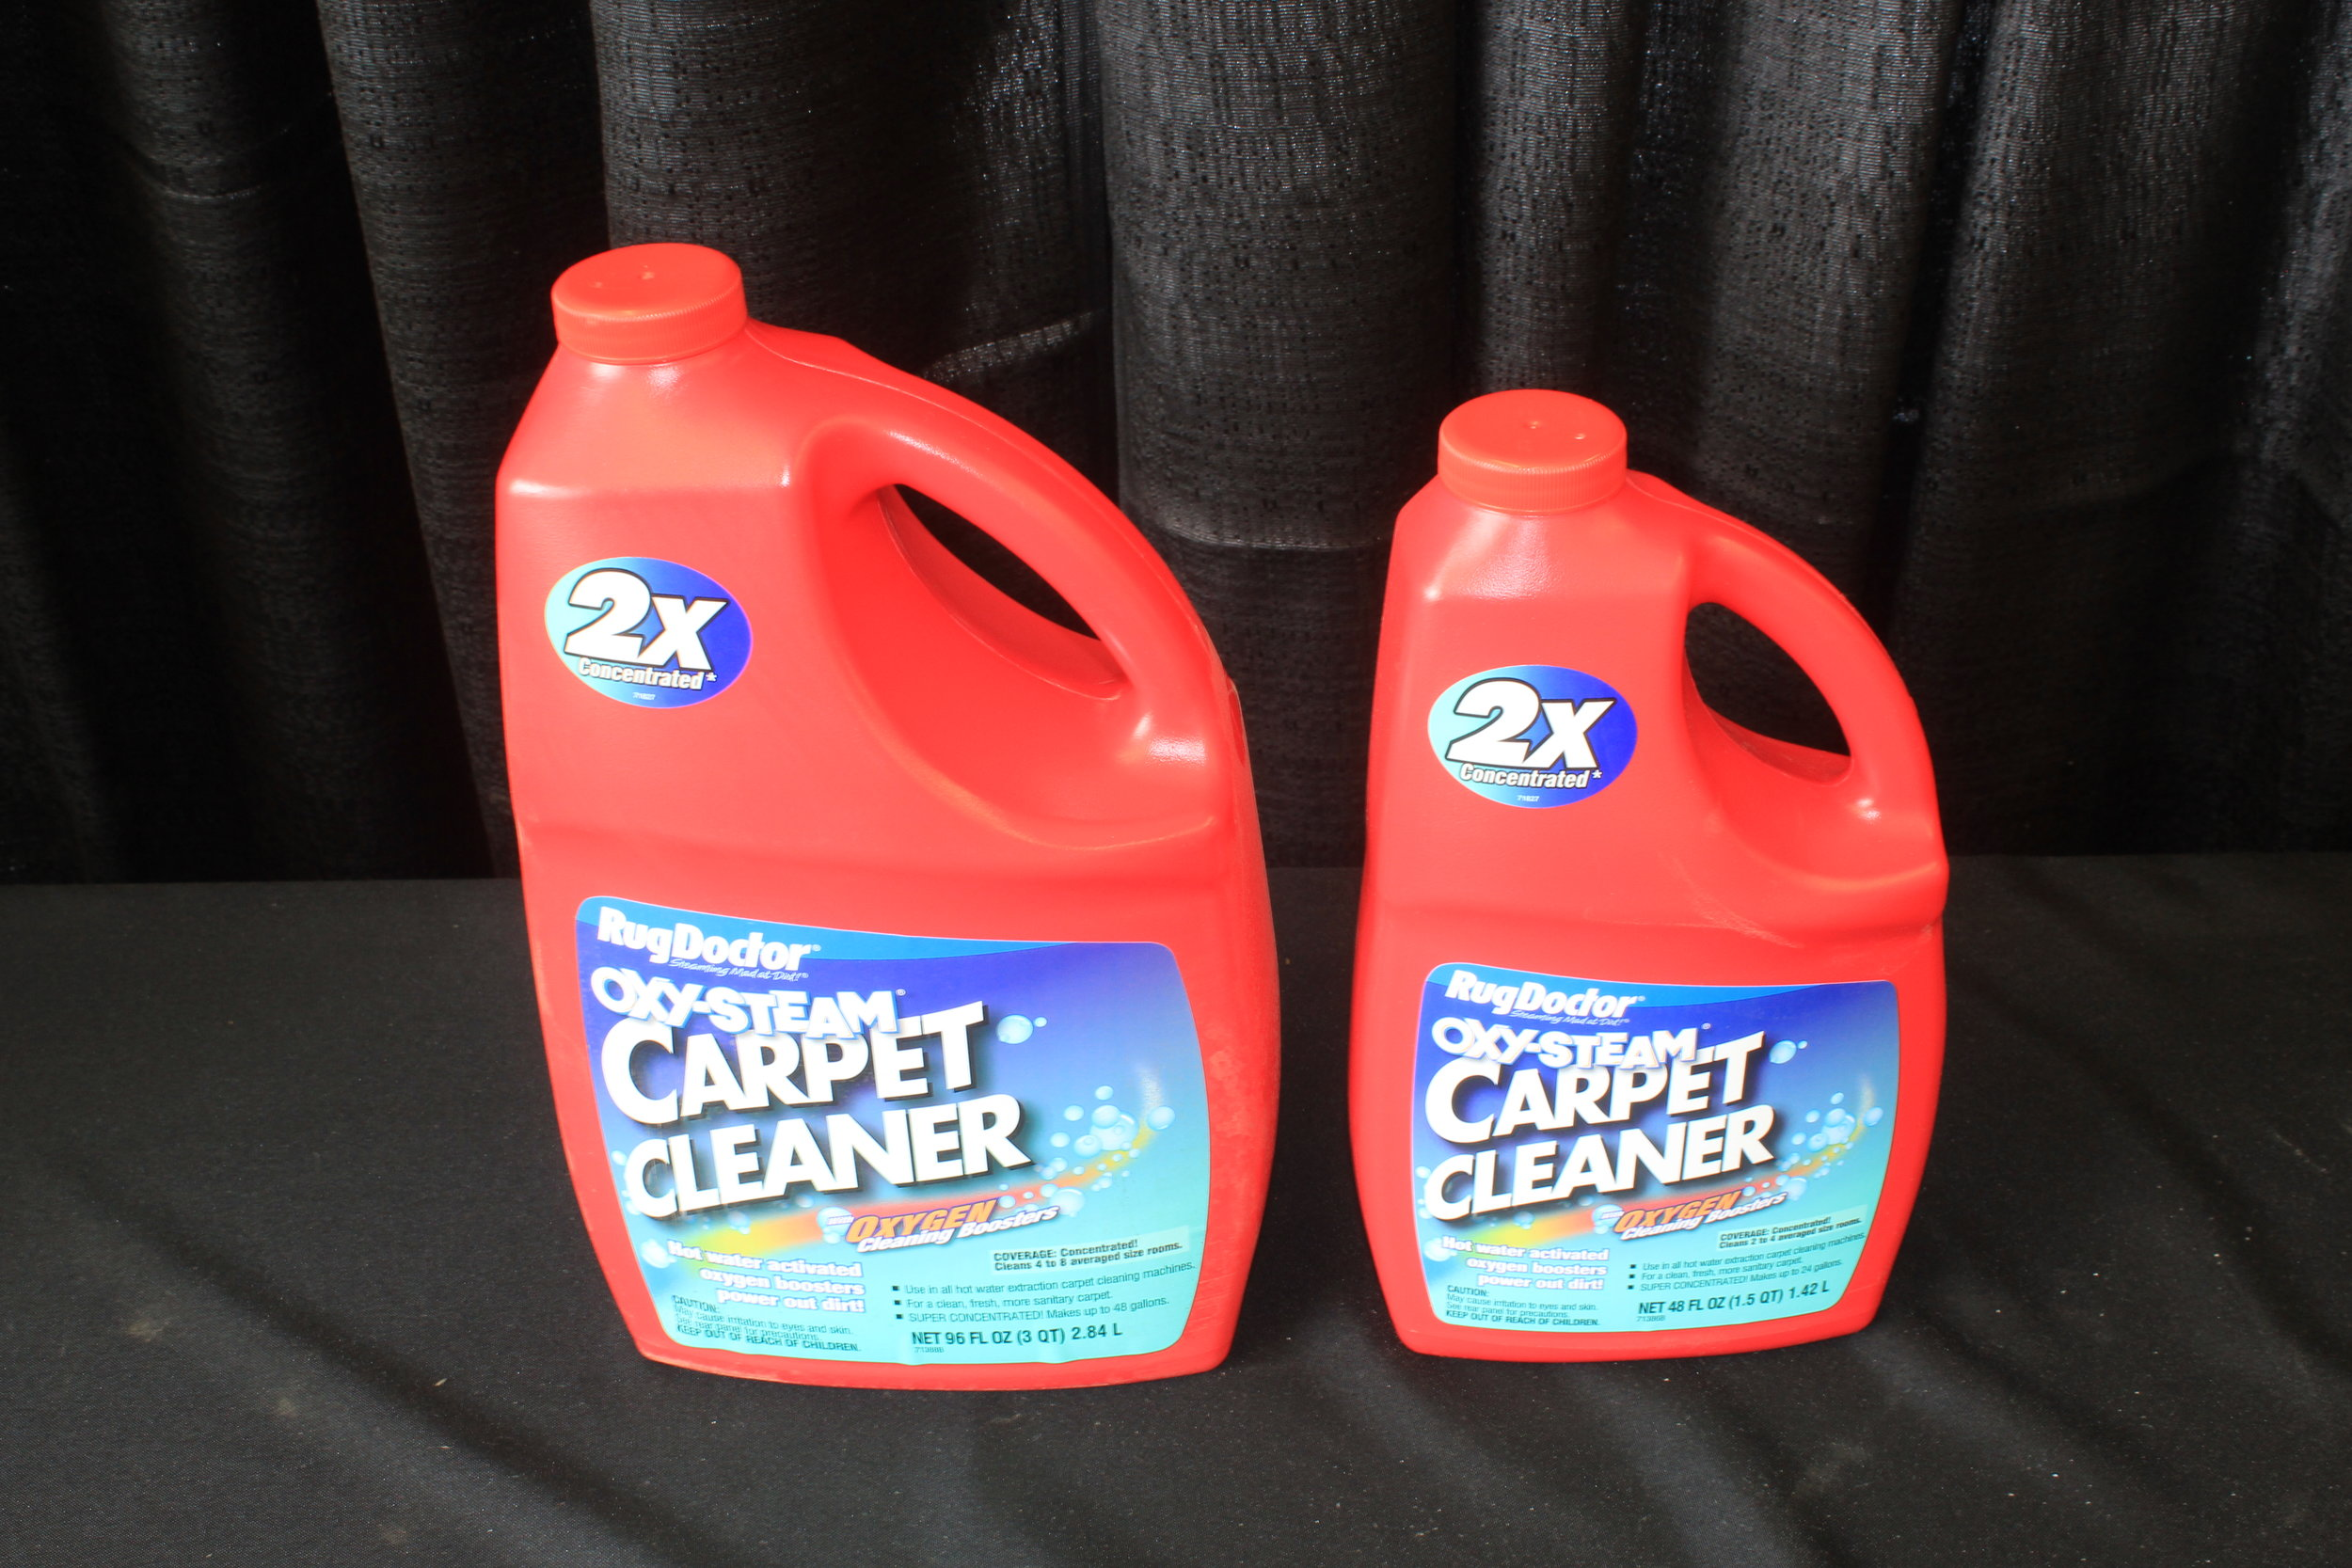 Rug Doctor - Oxi-Clean Carpet Cleaner